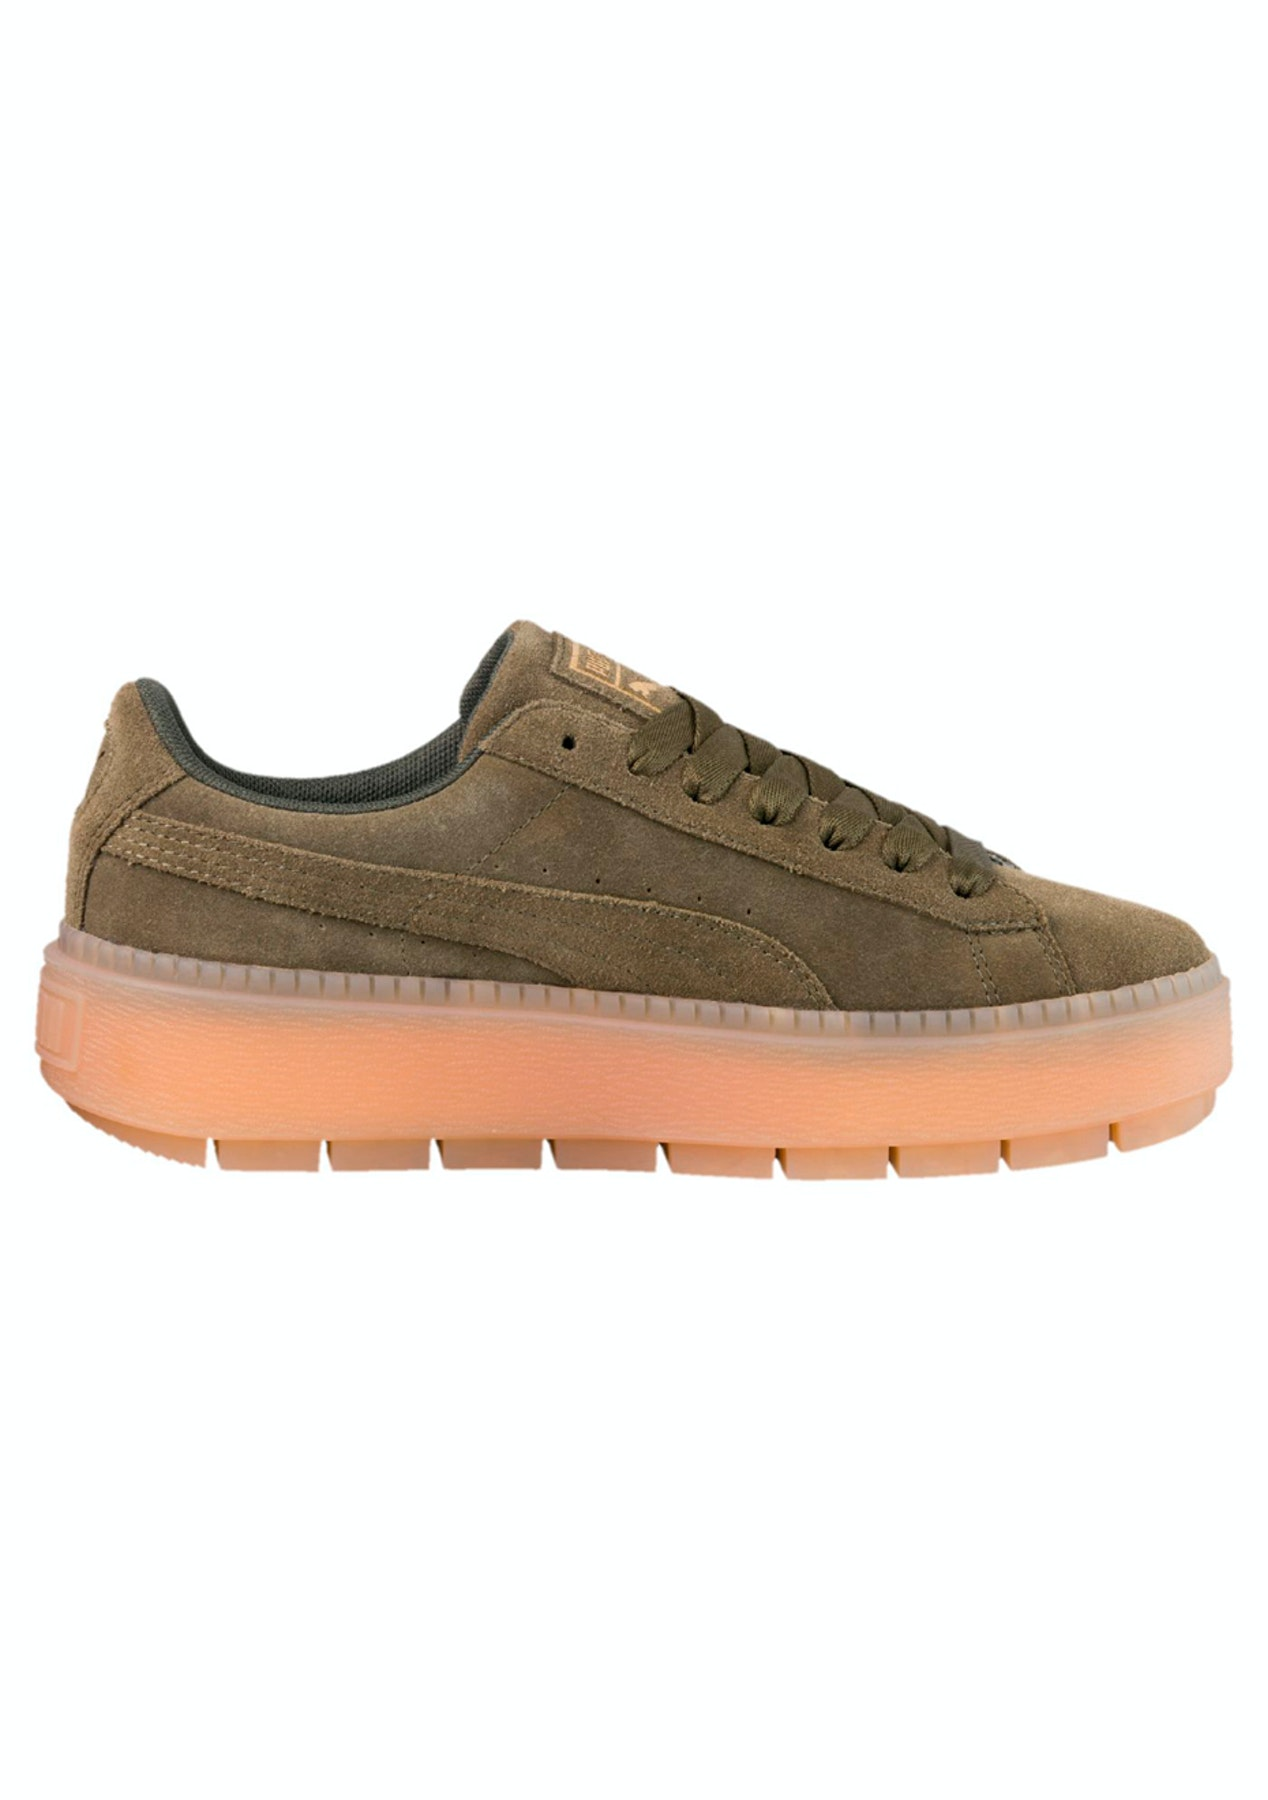 239e2598a5e Puma Womens - Suede Platform Trace - Olive - The Big Warehouse Clearout -  Onceit